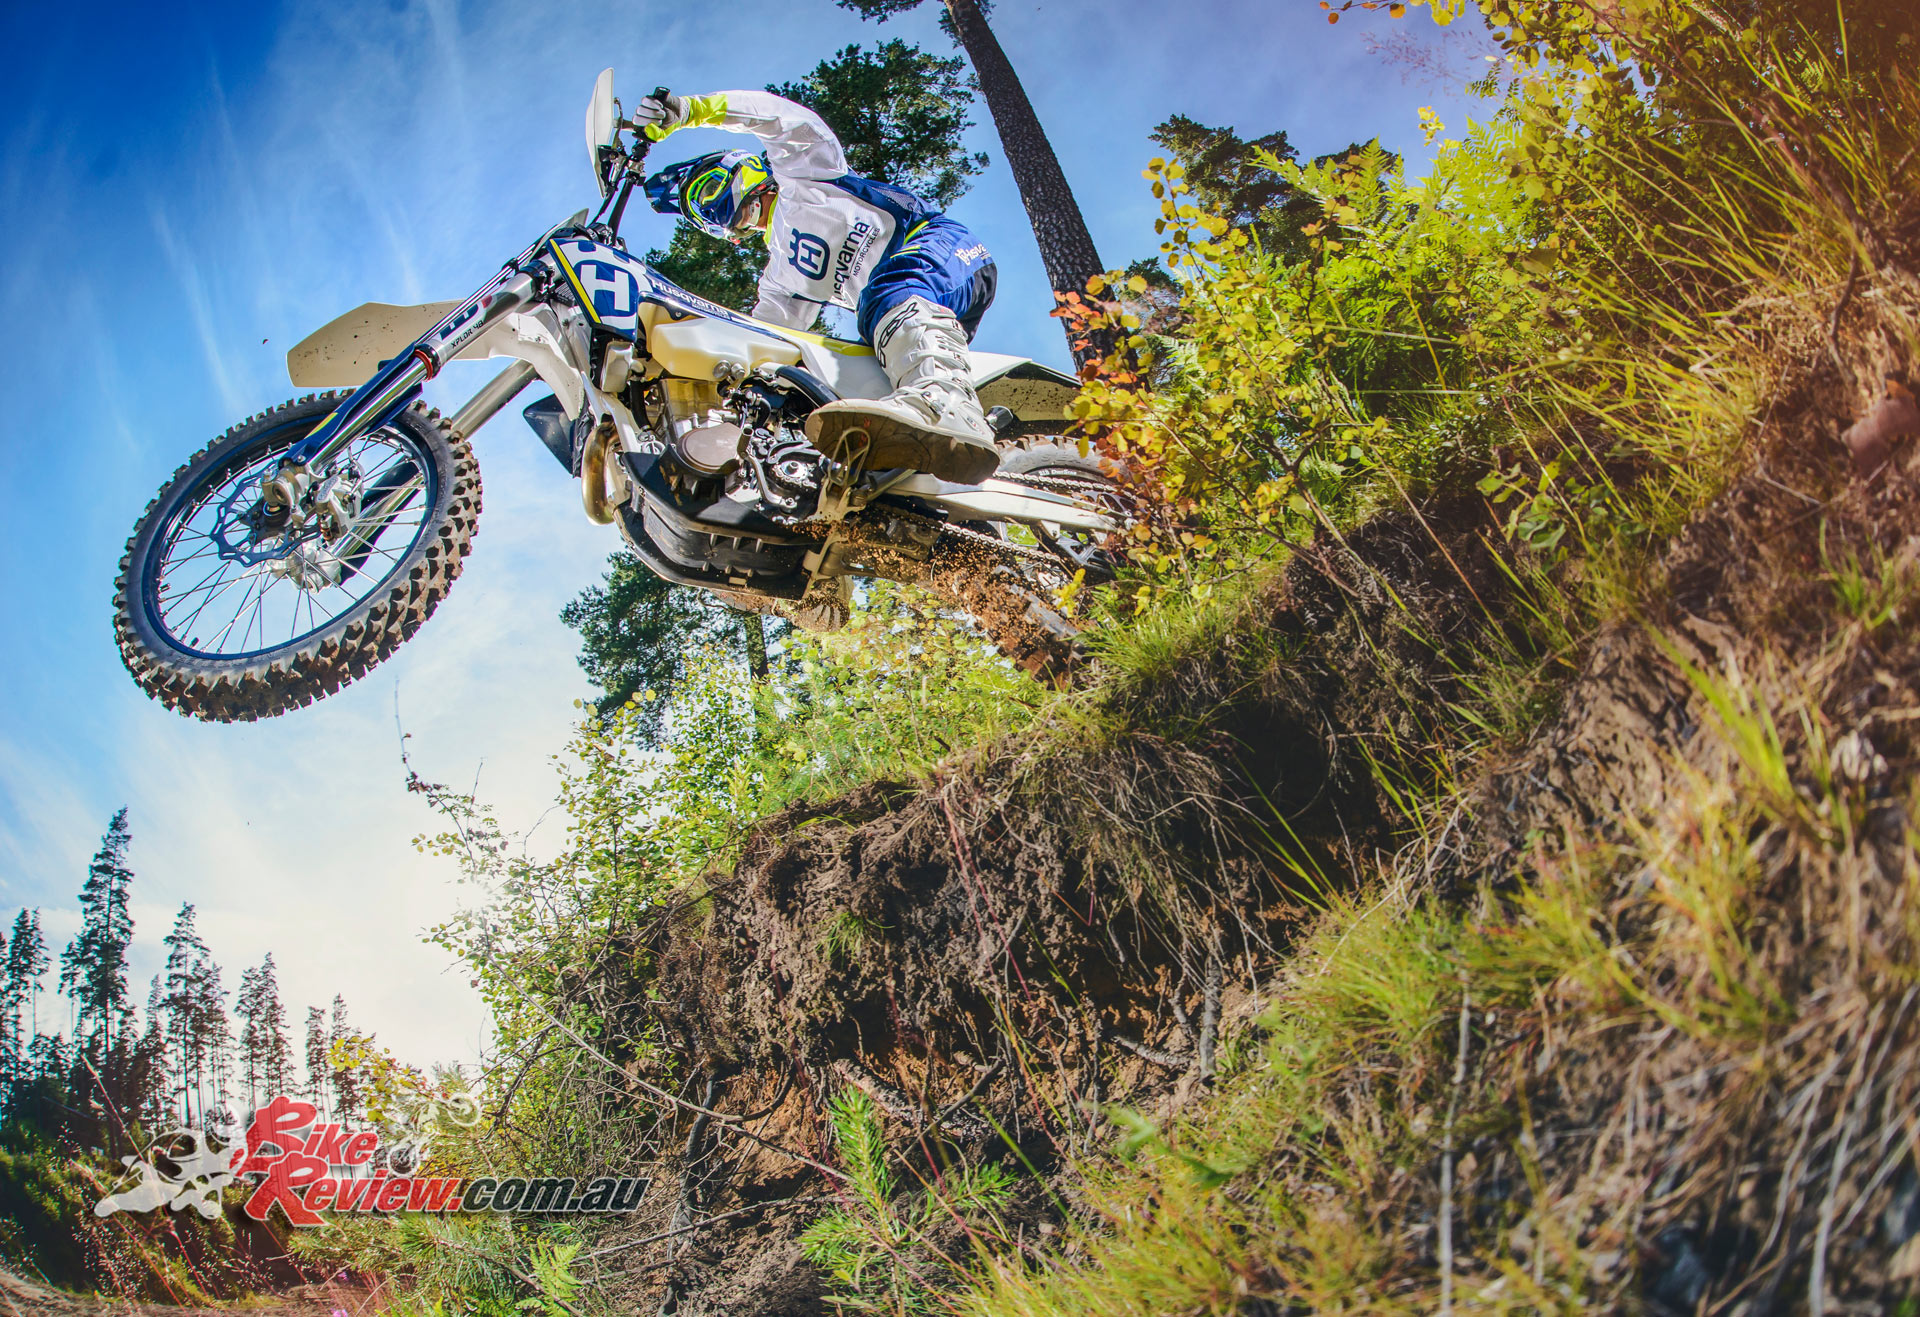 2017 Husqvarna FE 450 has serious power and is for the experienced rider, who will get the most out of the amazing chassis and engine.